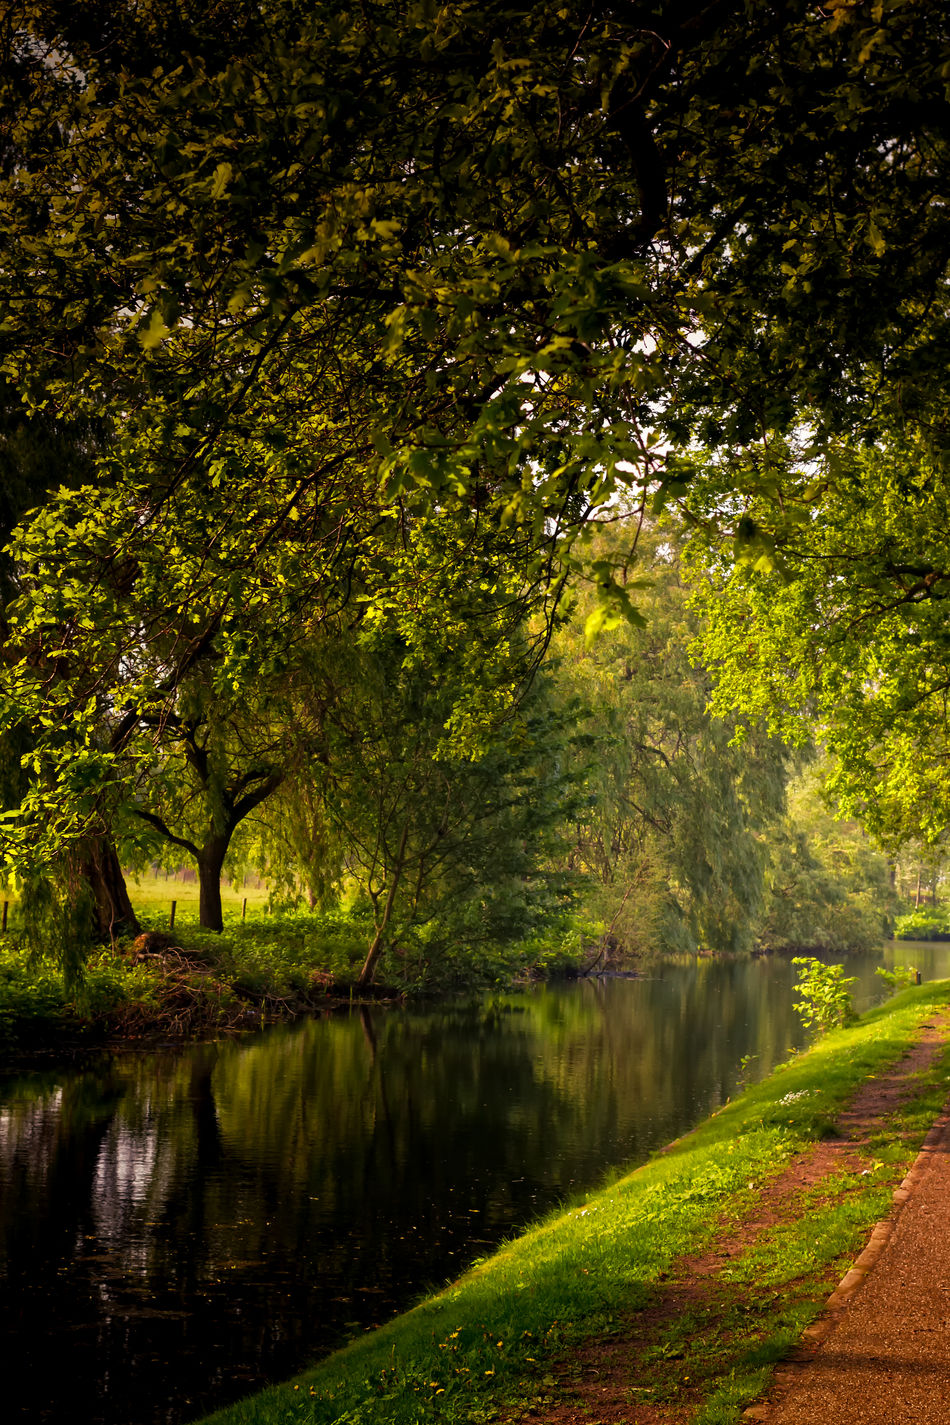 Reflections On The Canal Water Beauty In Nature Cultures Day Deciduous Tree Environment Extreme Weather Lake Landscape Natural Parkland Nature No People Outdoors Social Issues Stream - Flowing Water Travel Destinations Tree Water